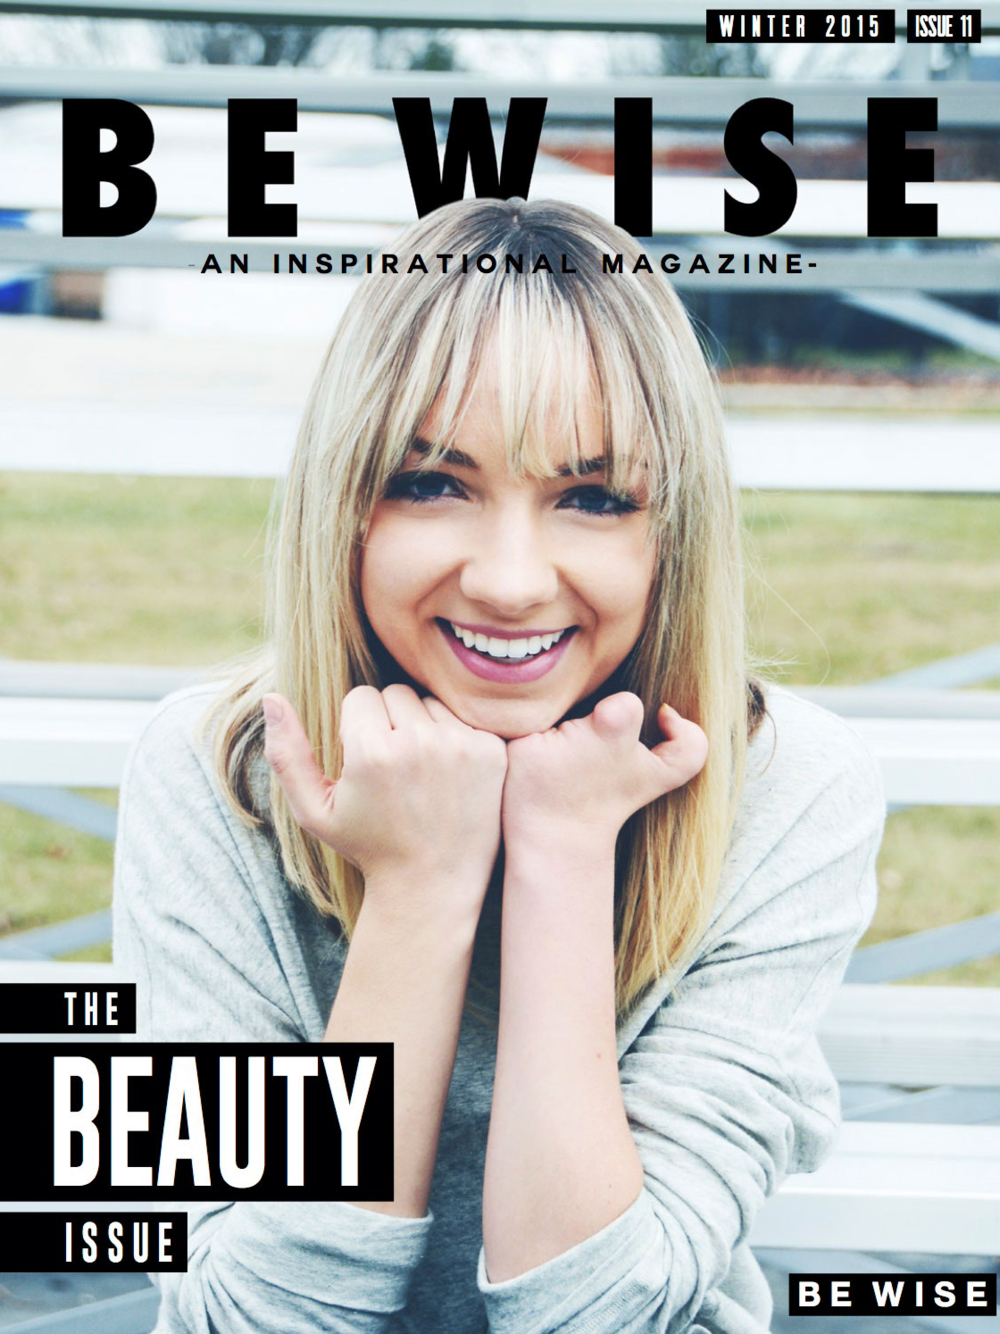 BE WISE magazine - Winter 2015. To view the full issue click here.